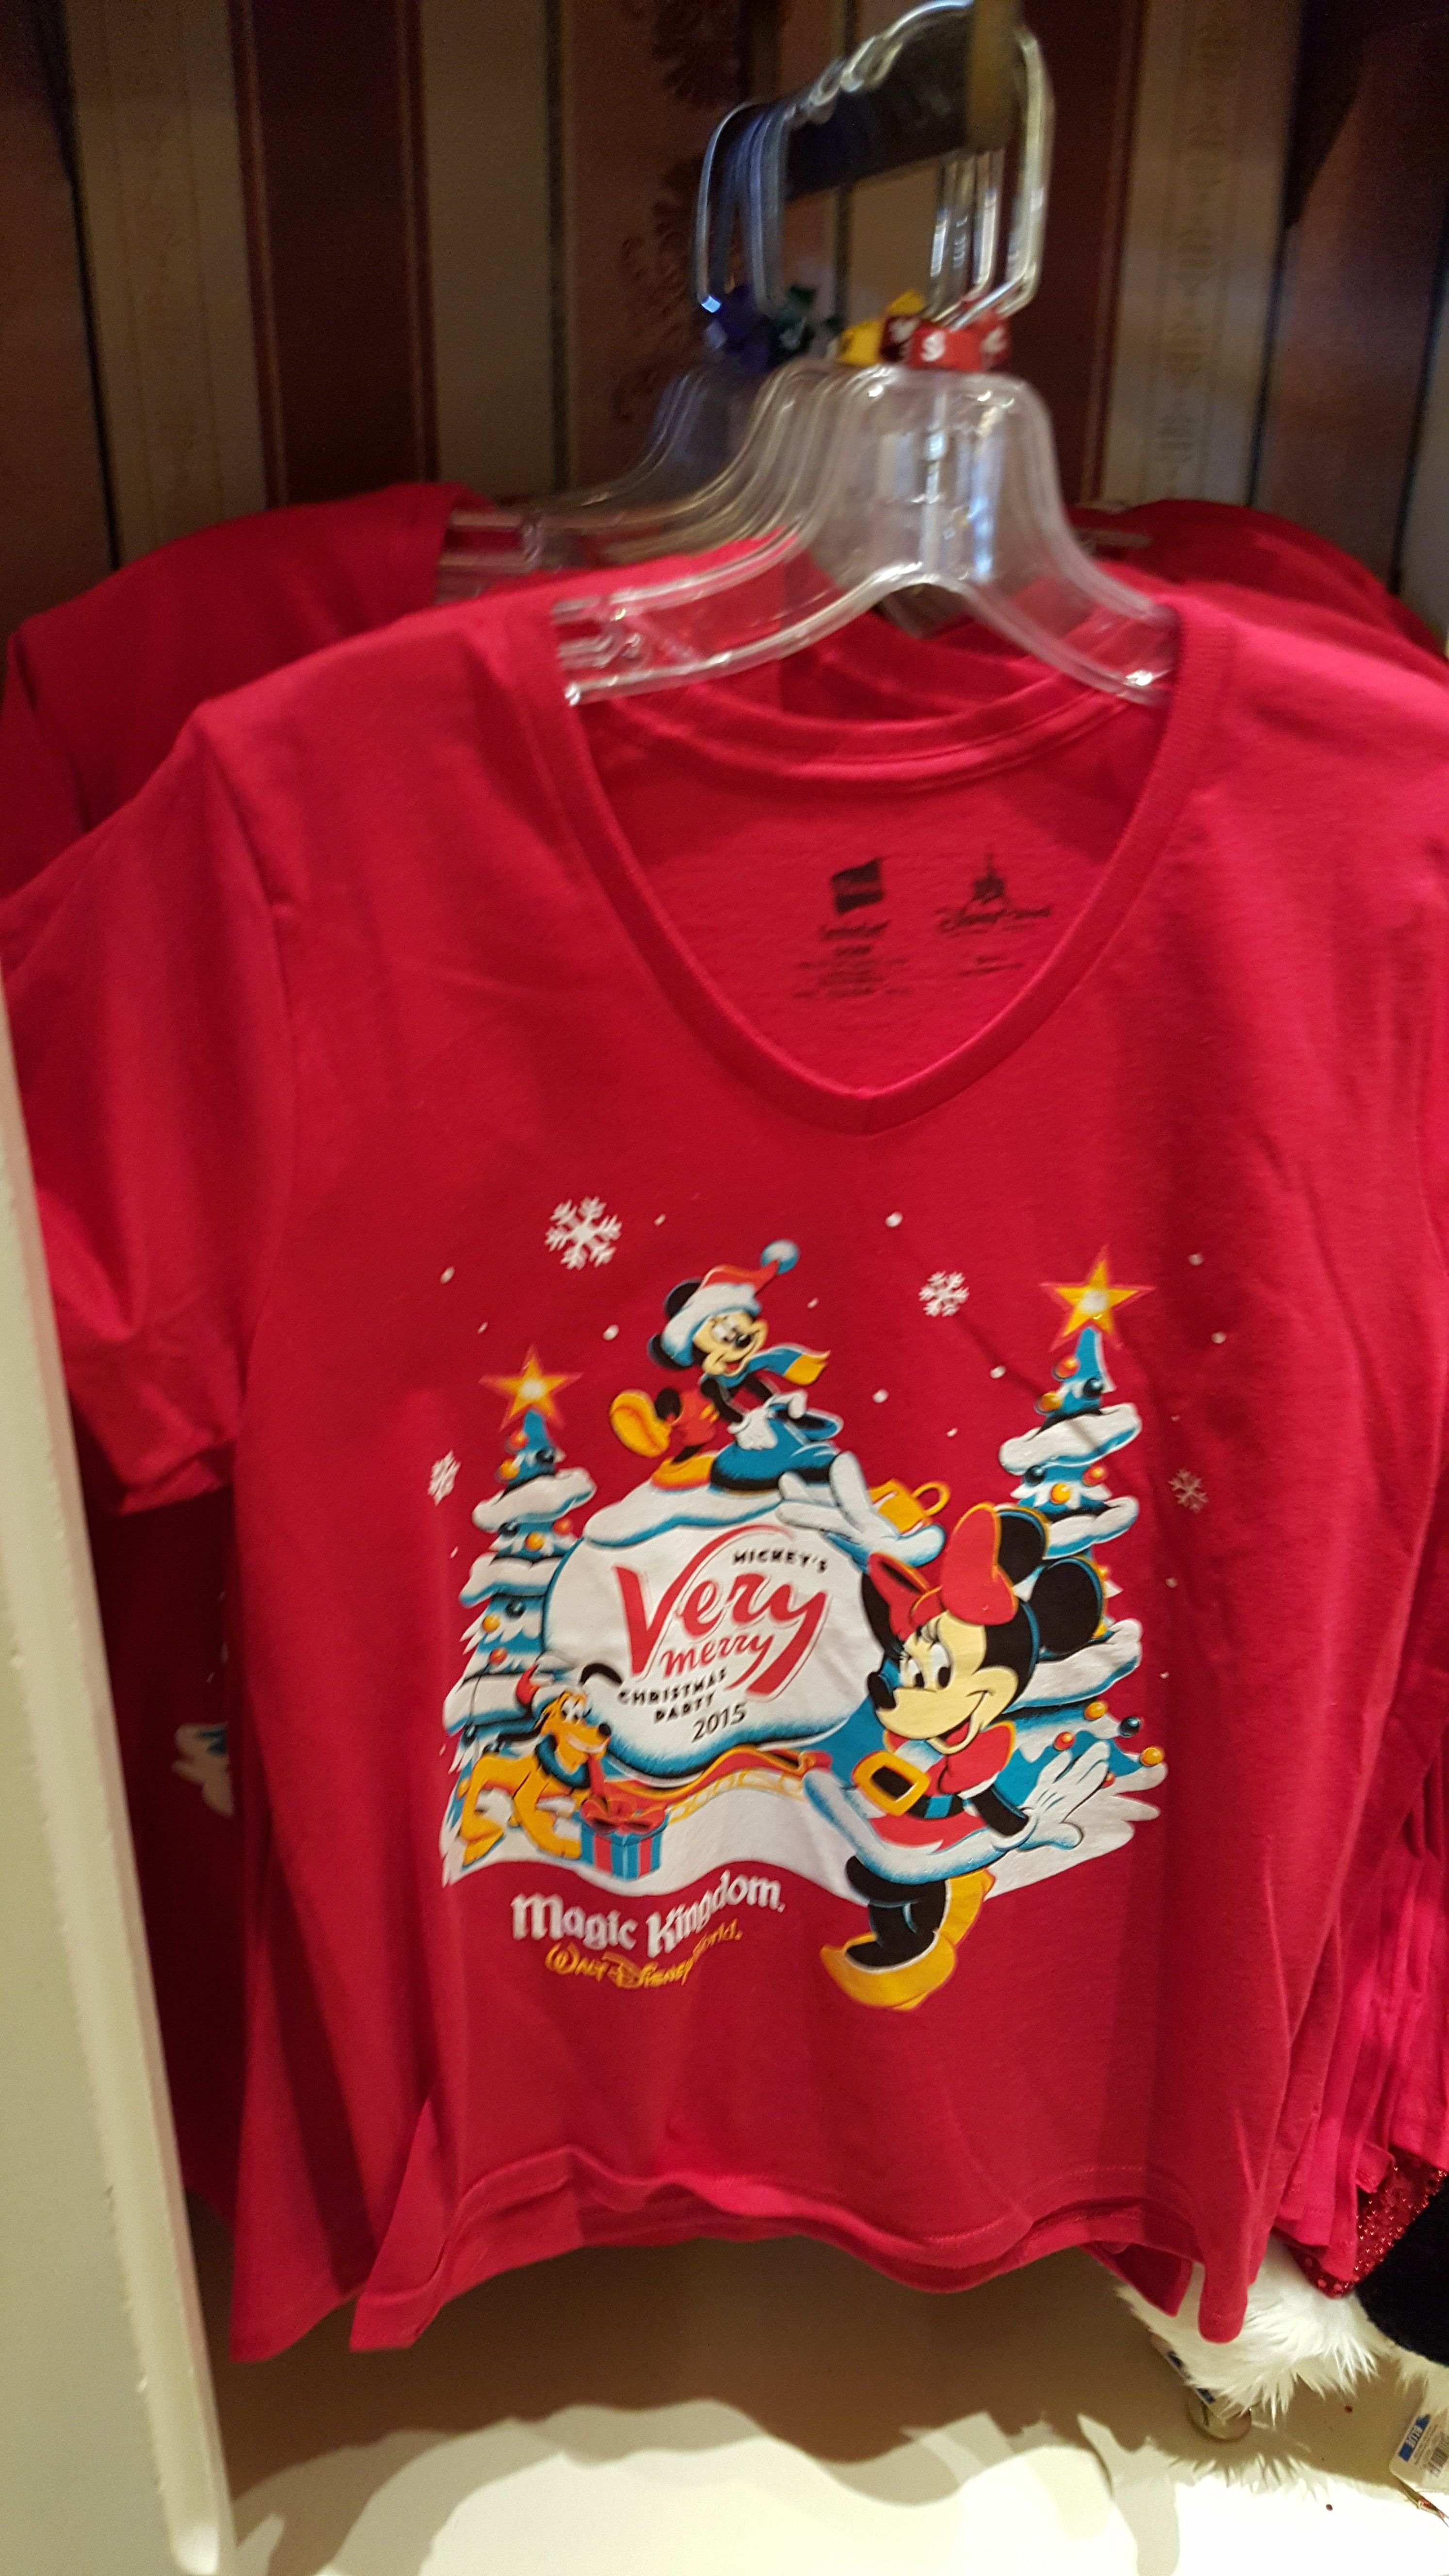 Mickeys Very Merry Christmas Party Merchandise.Mickey S Very Merry Christmas Party The Food The